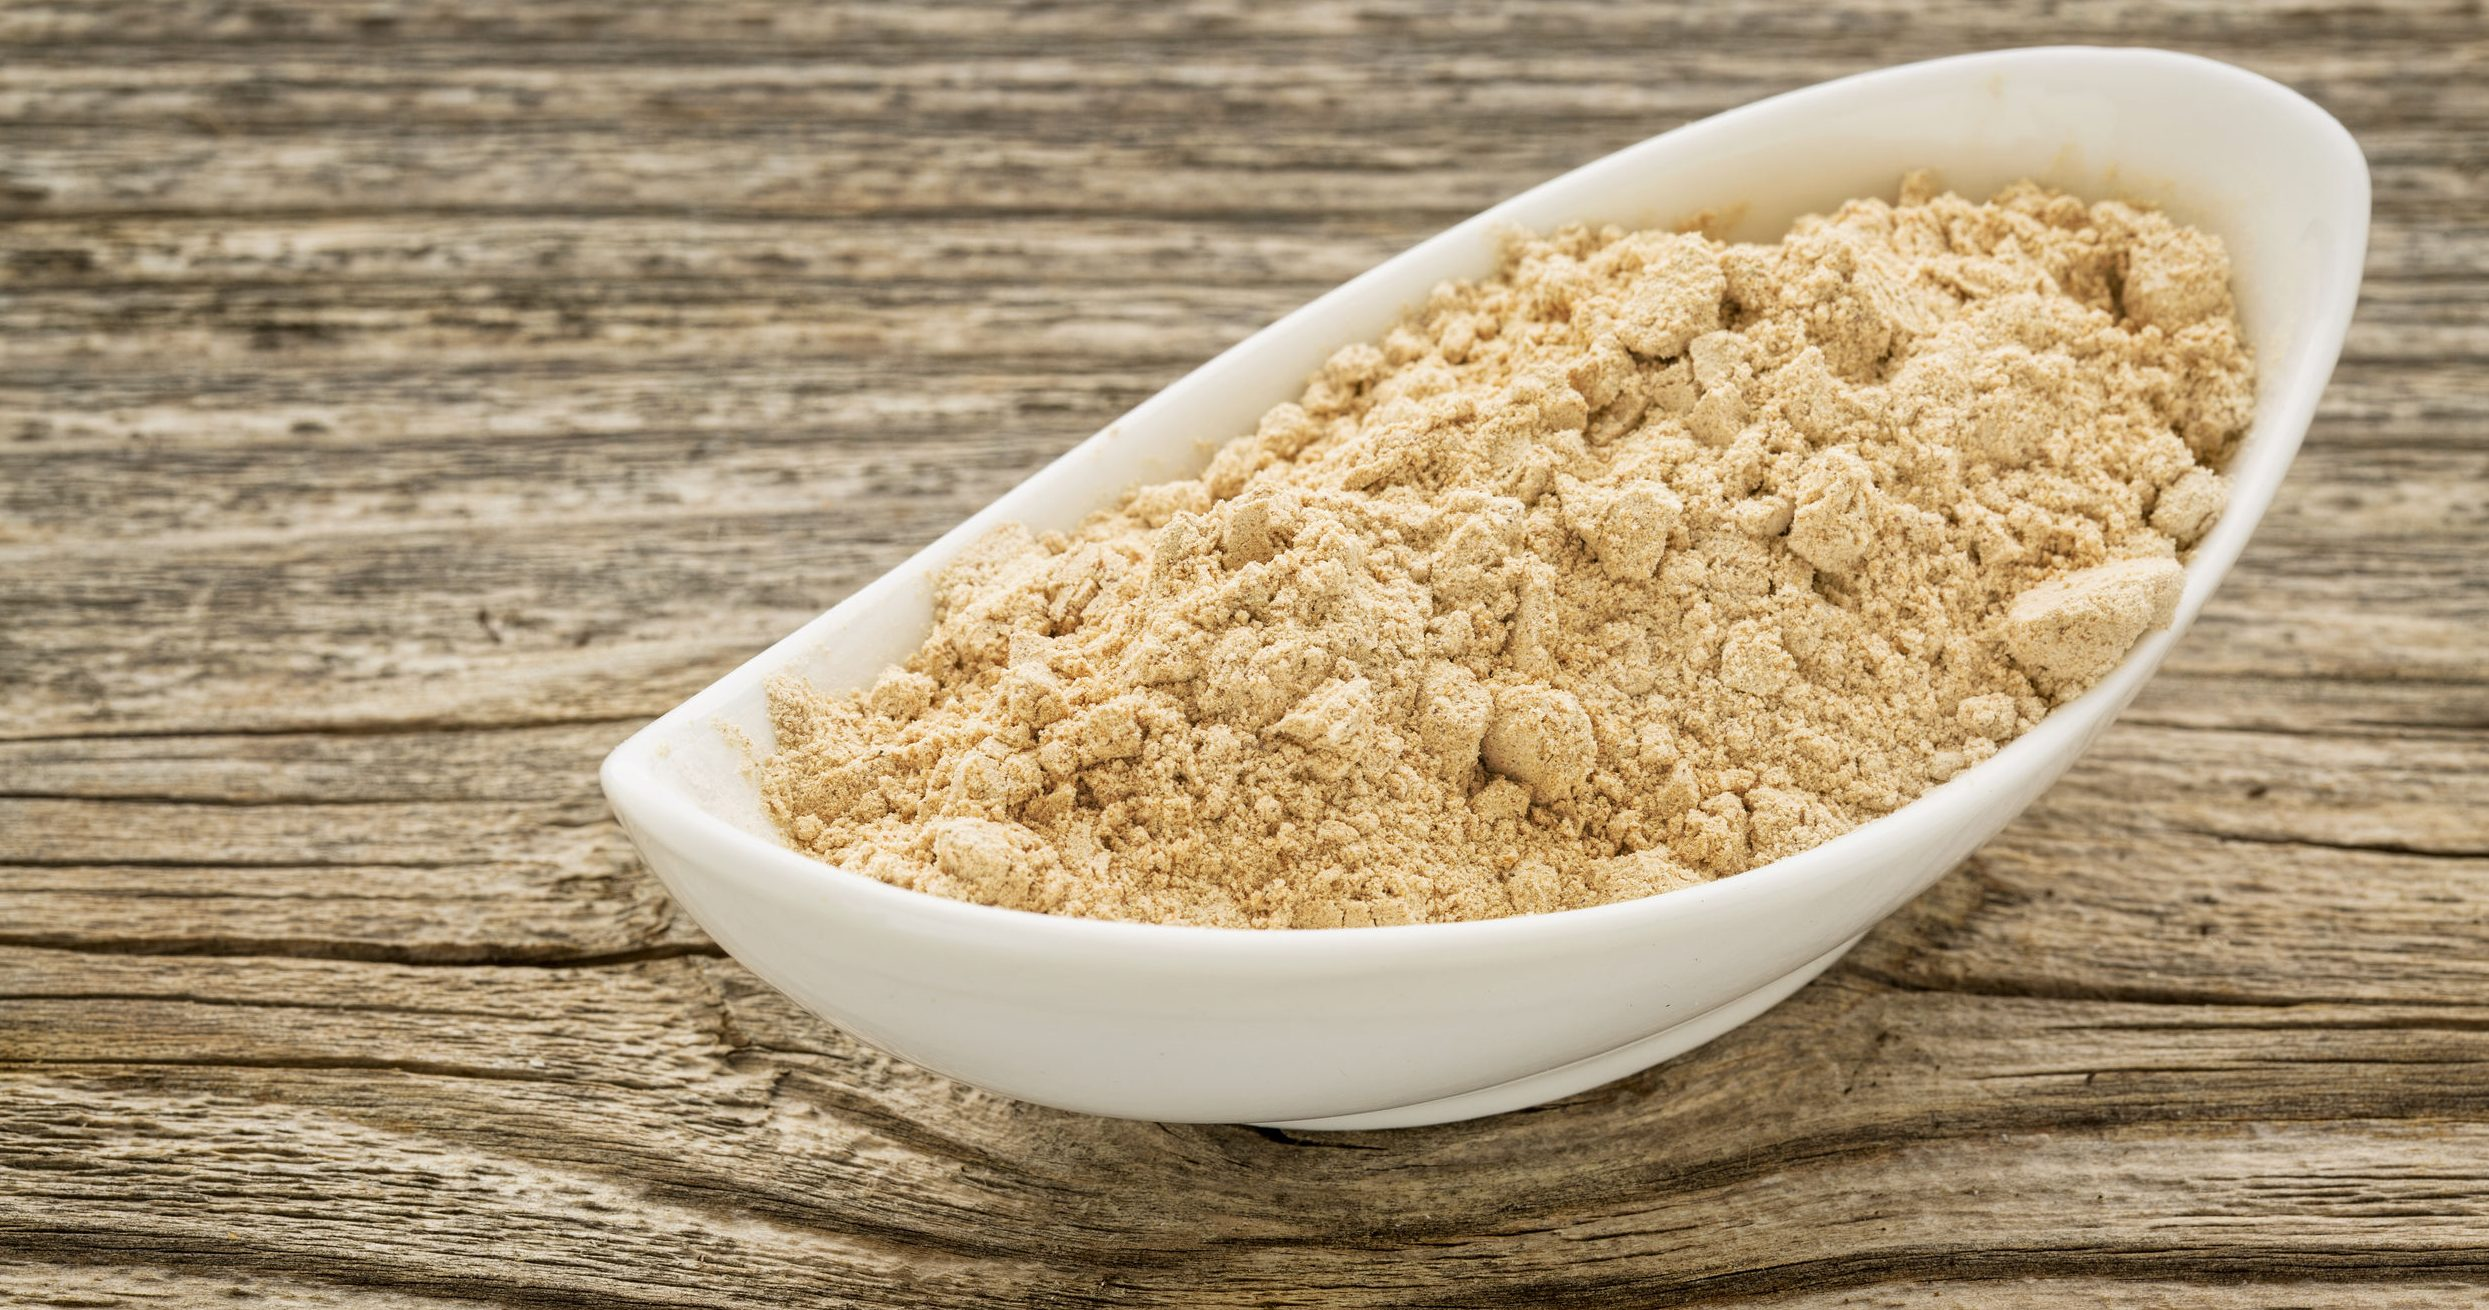 Best Maca Supplement 2020: Shopping Guide & Review